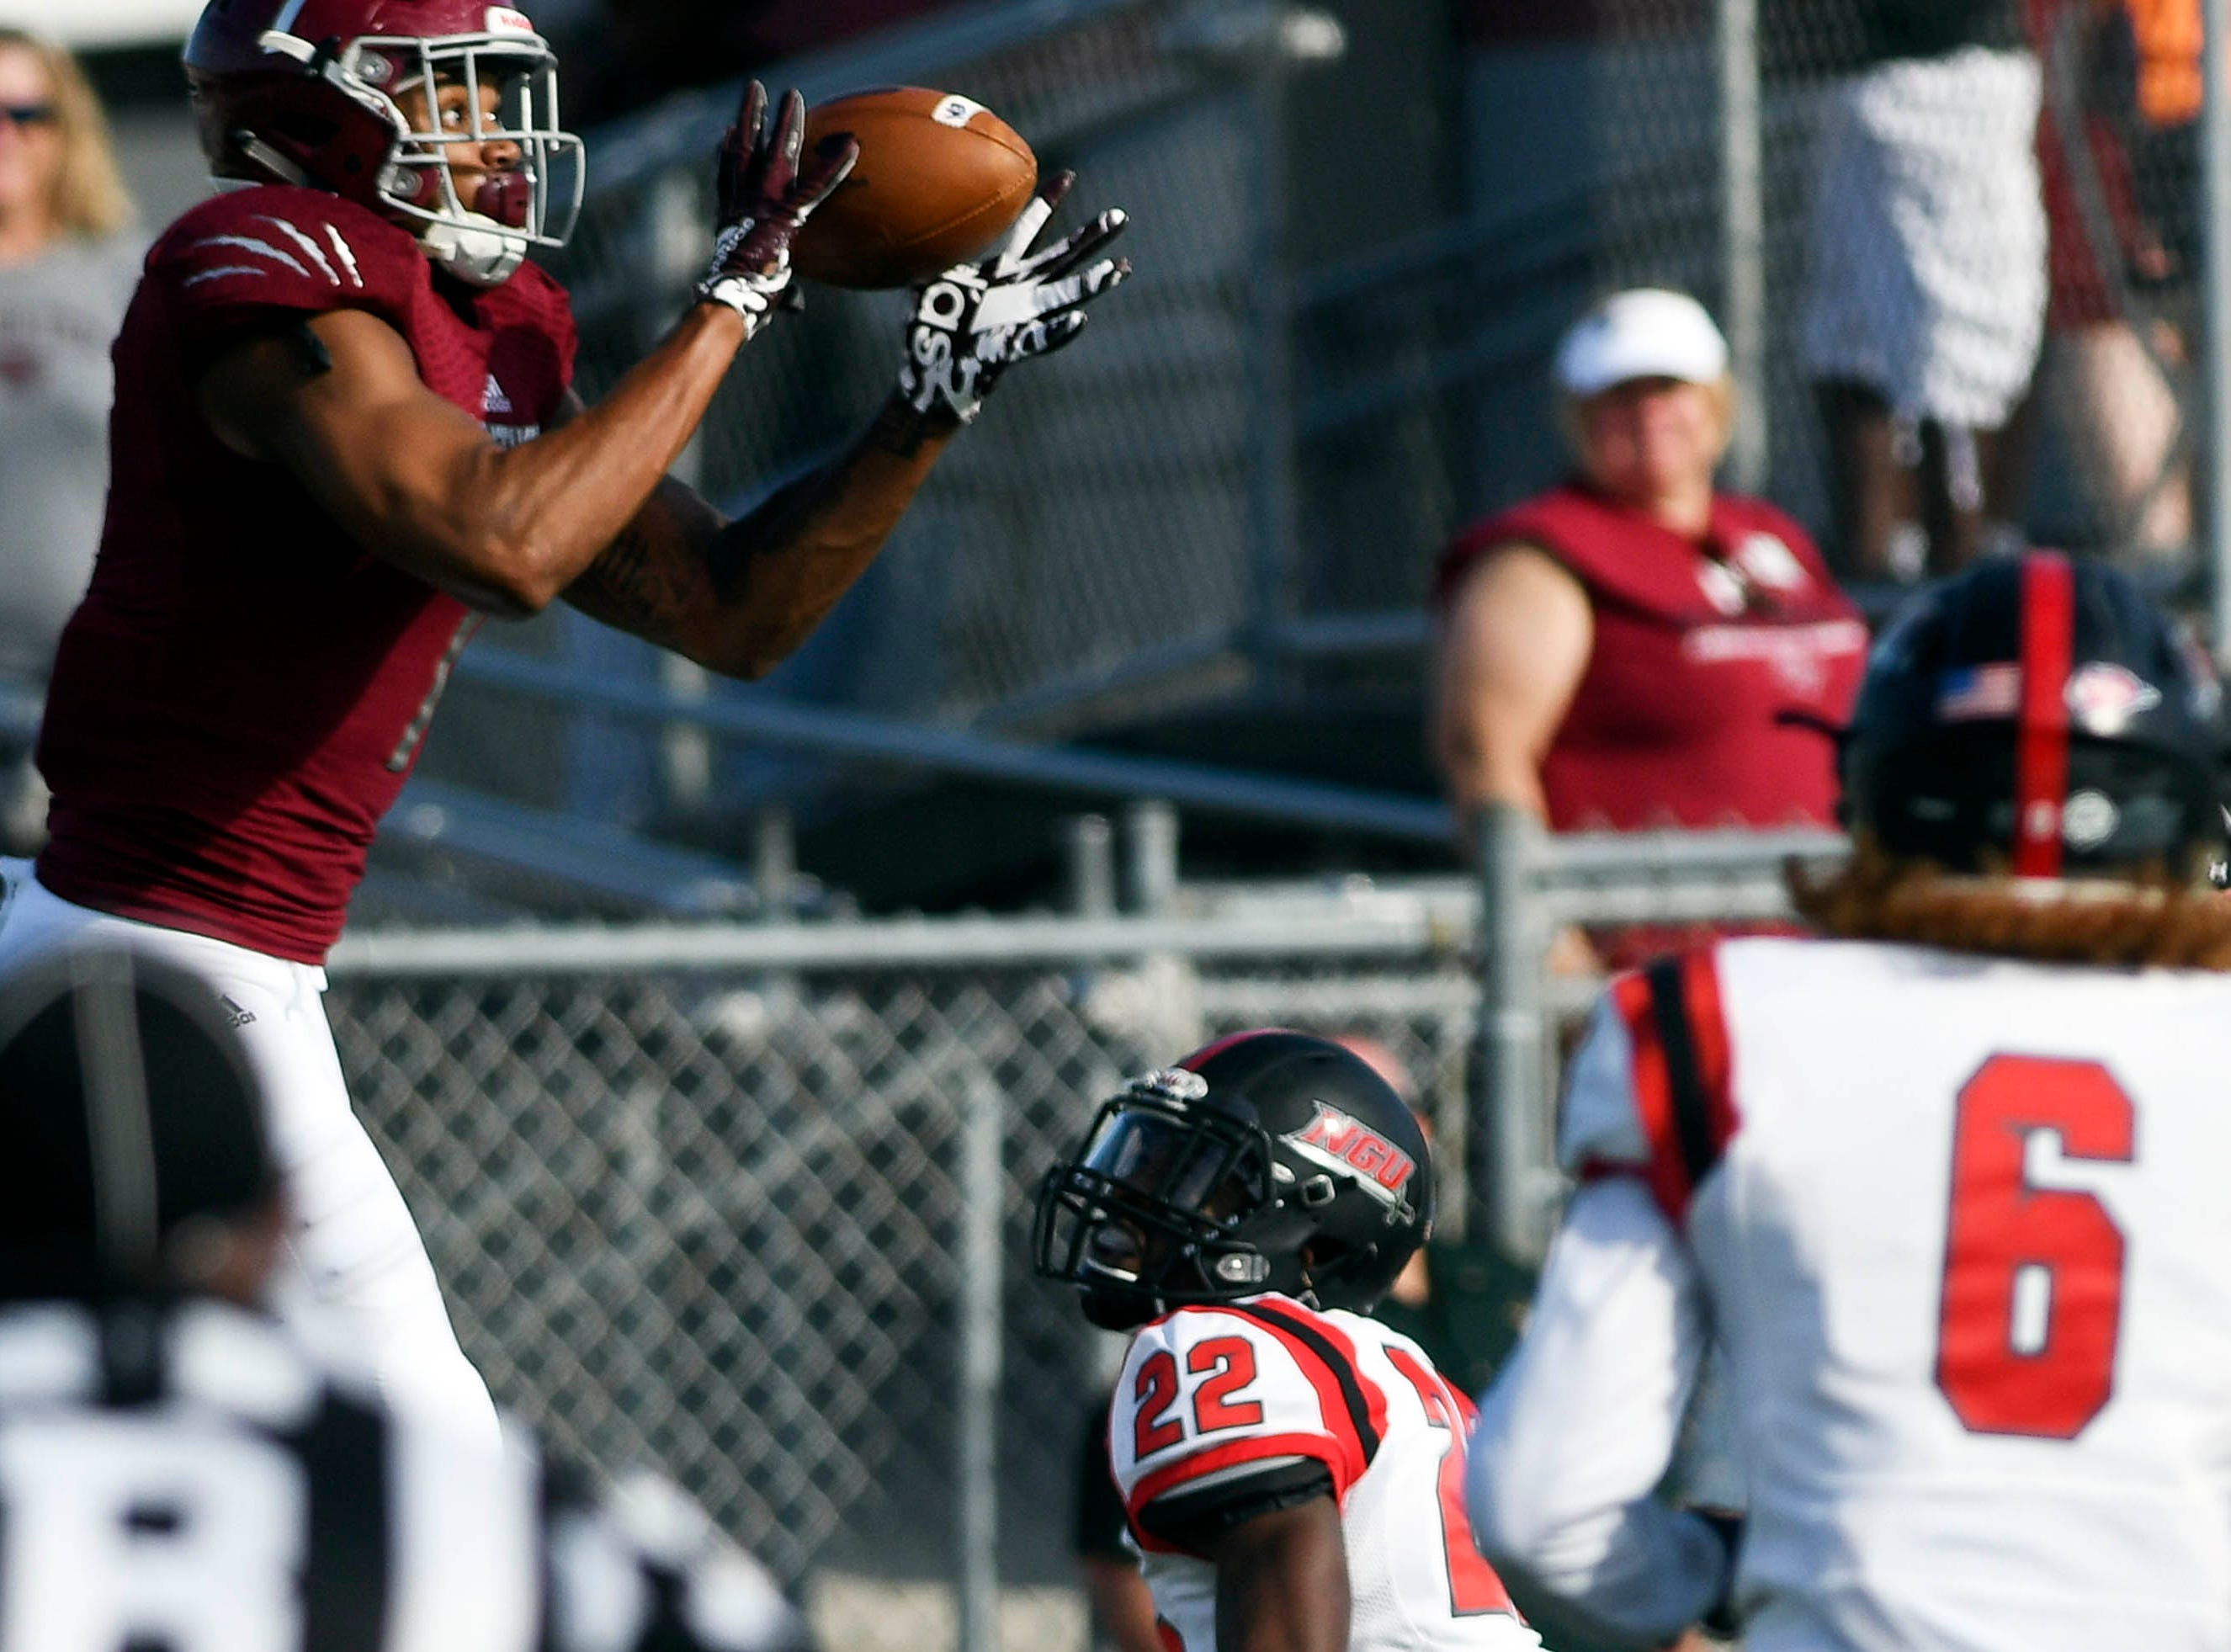 Terrance Bynum of Florida Tech catches a touchdown pass during Saturday's game against North Greenville.